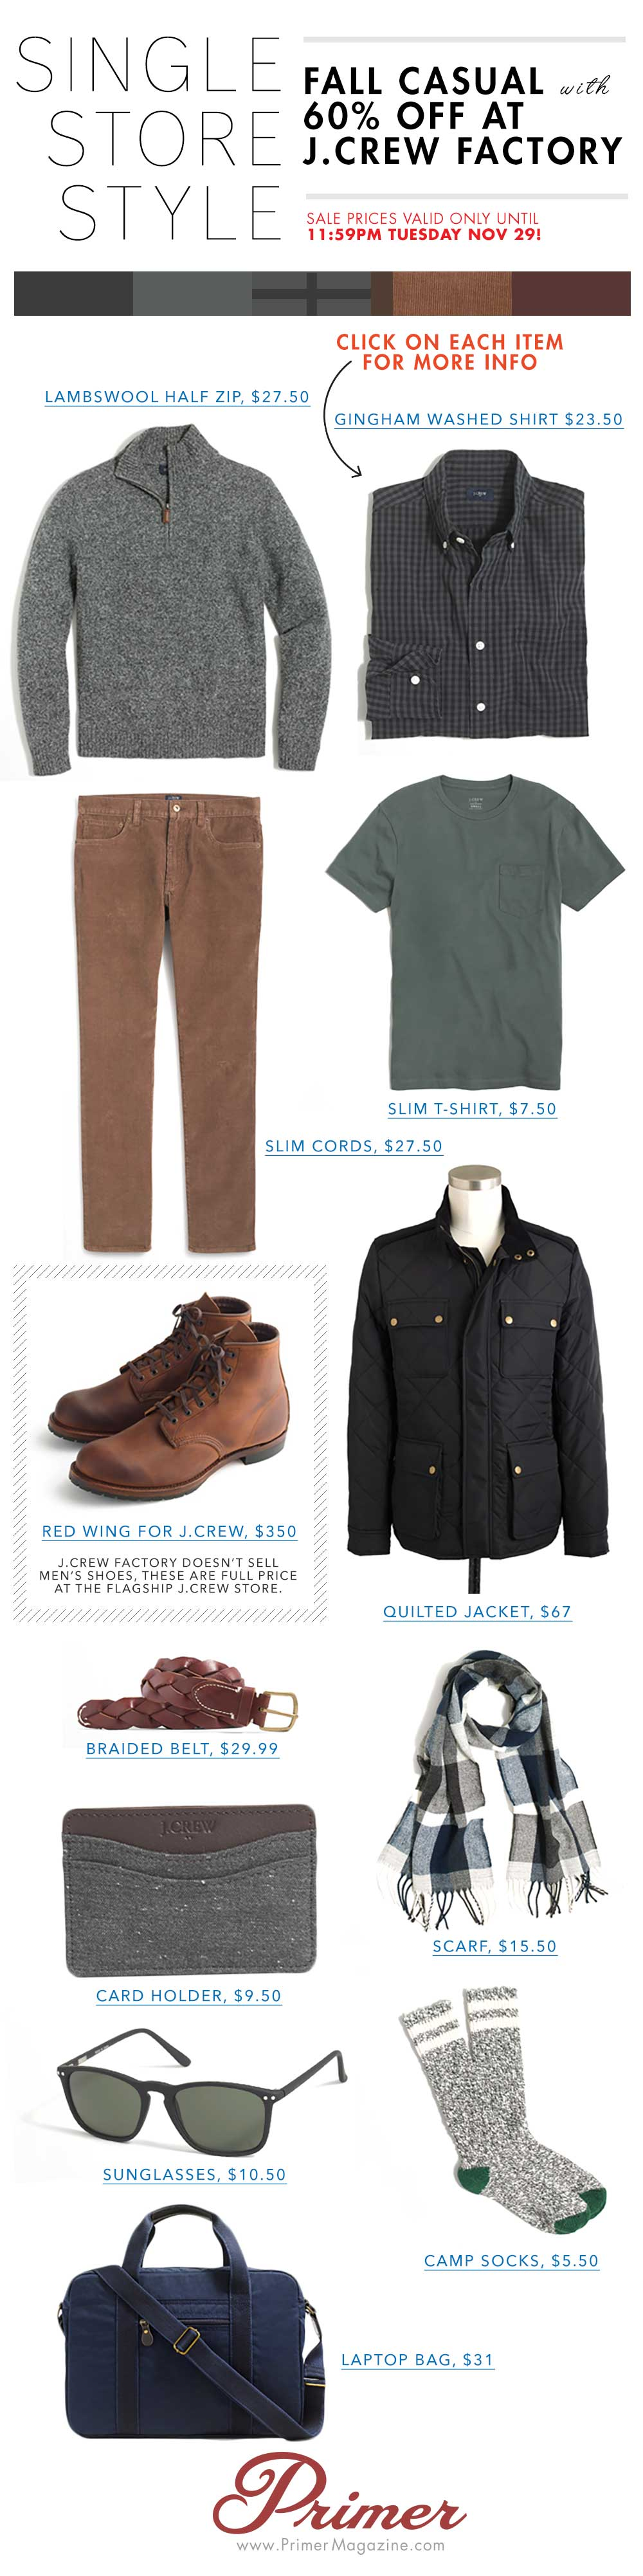 Single Store Style - Outfit made from Jcrew Factory